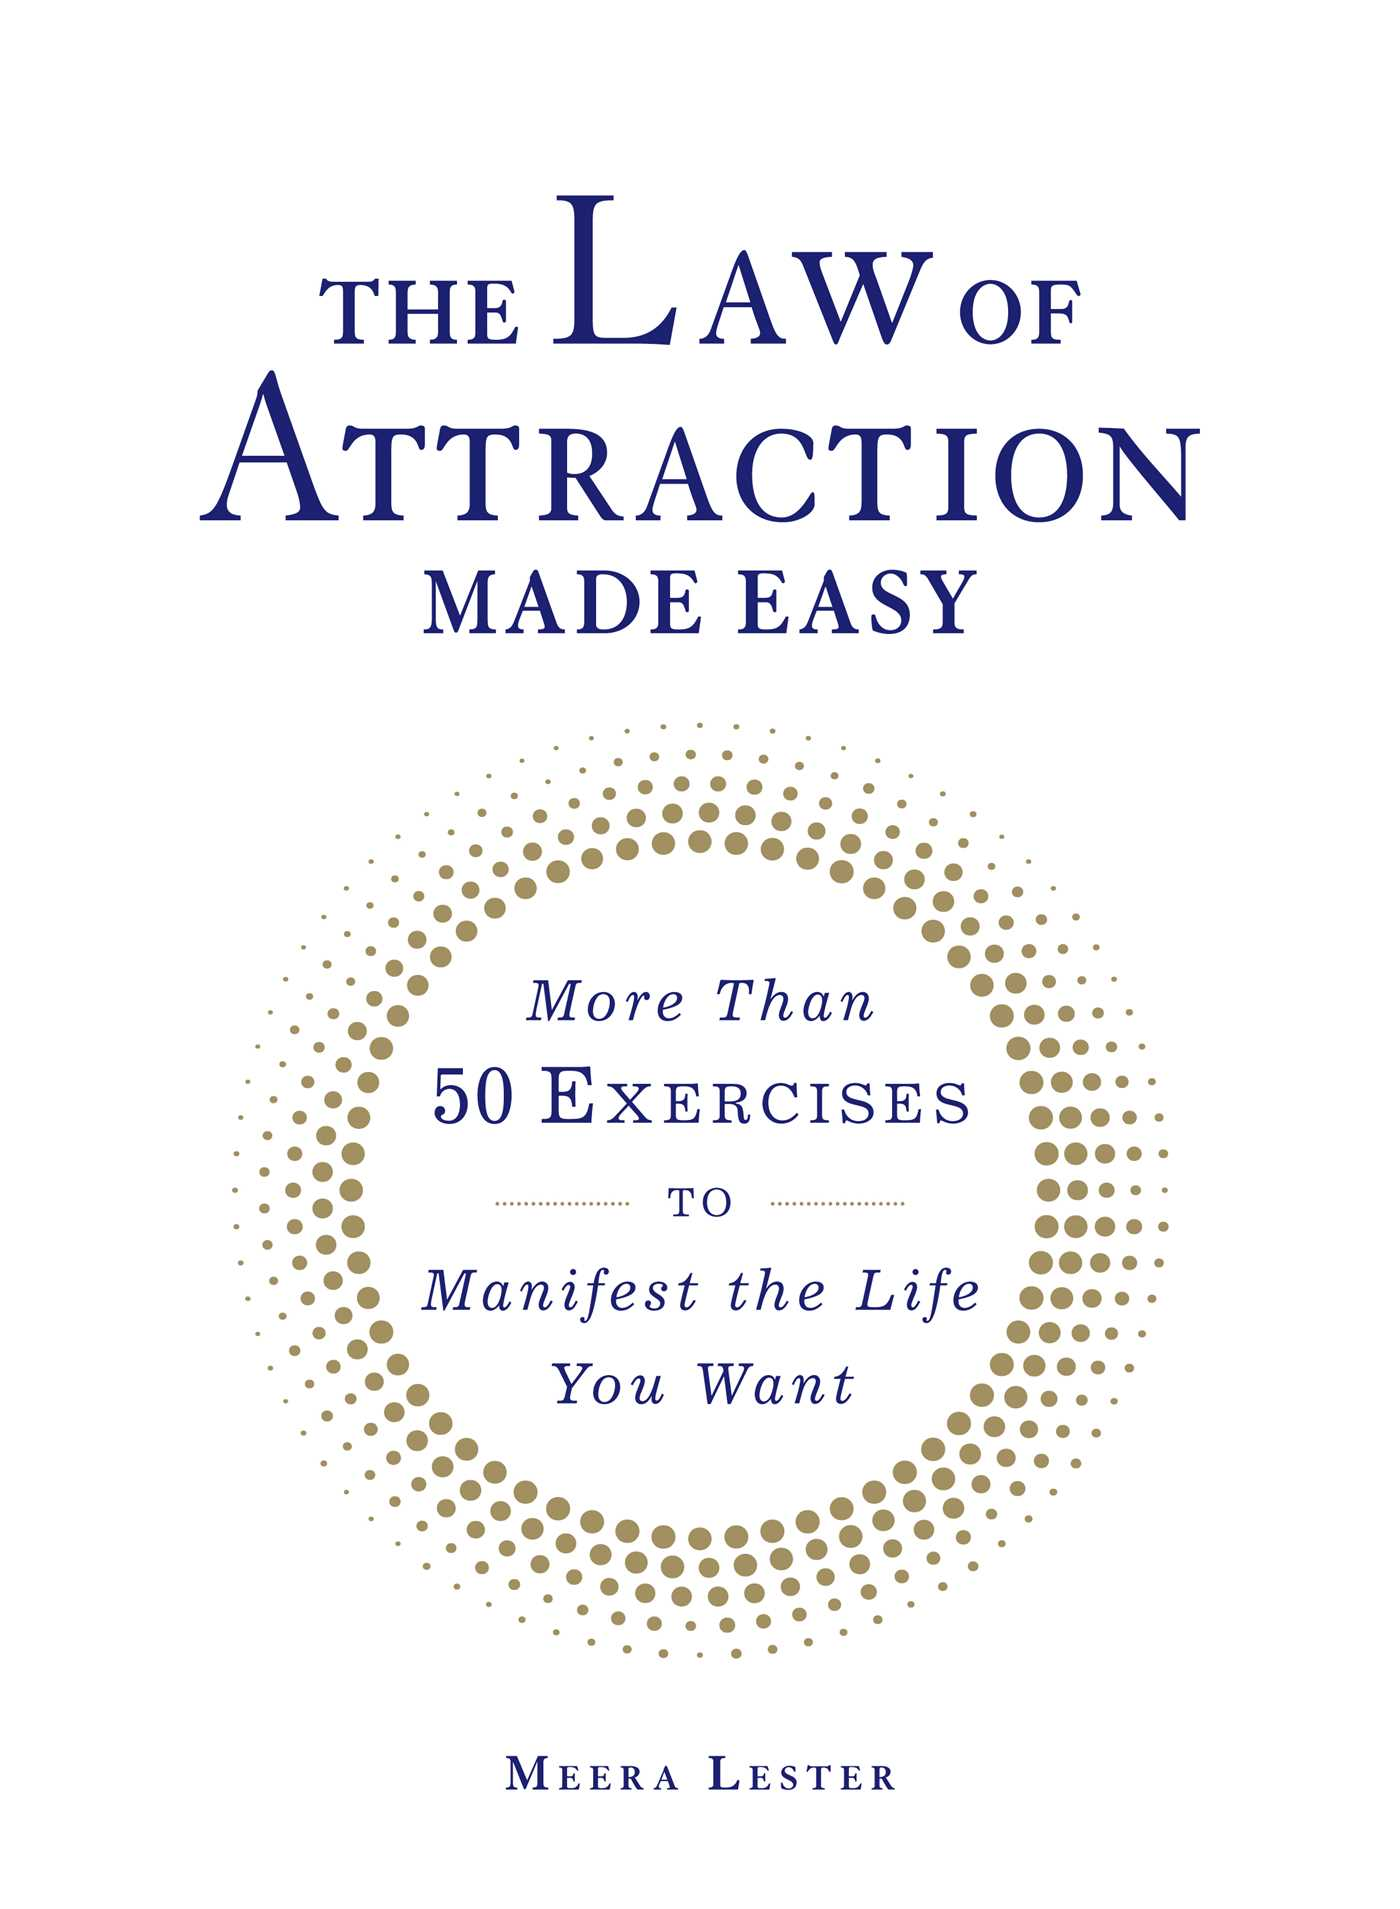 The Law Of Attraction Made Easy Ebook By Meera Lester